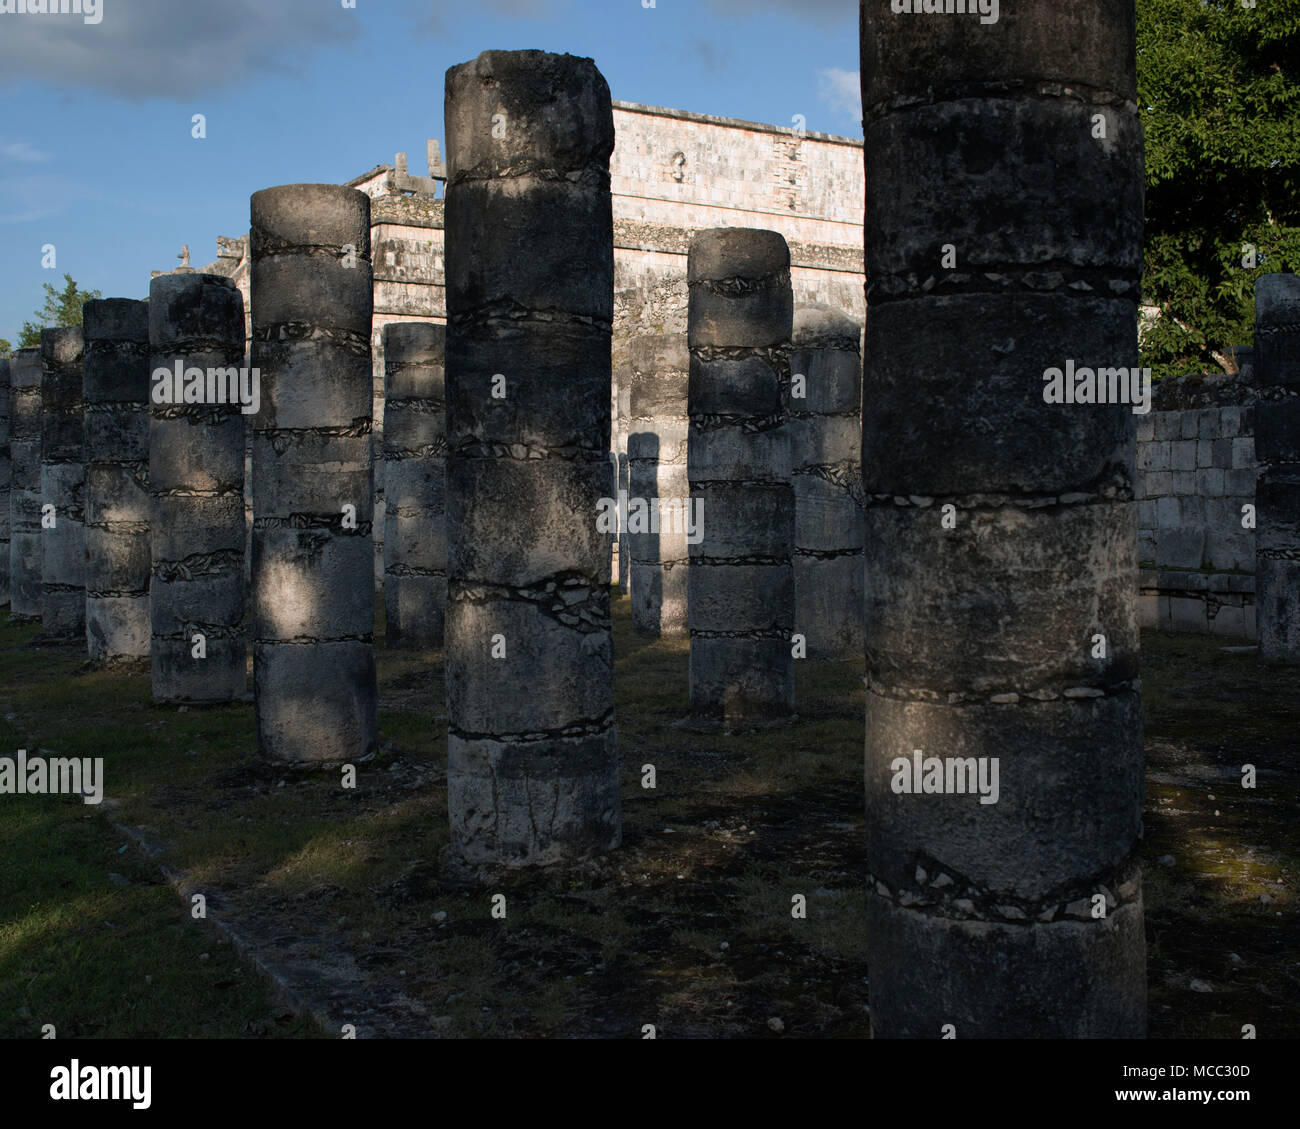 The Temple of a Thousand Warriors at the ancient Maya archaeological site of Chichén Itzá, Yucatán State, Mexico.Stock Photo